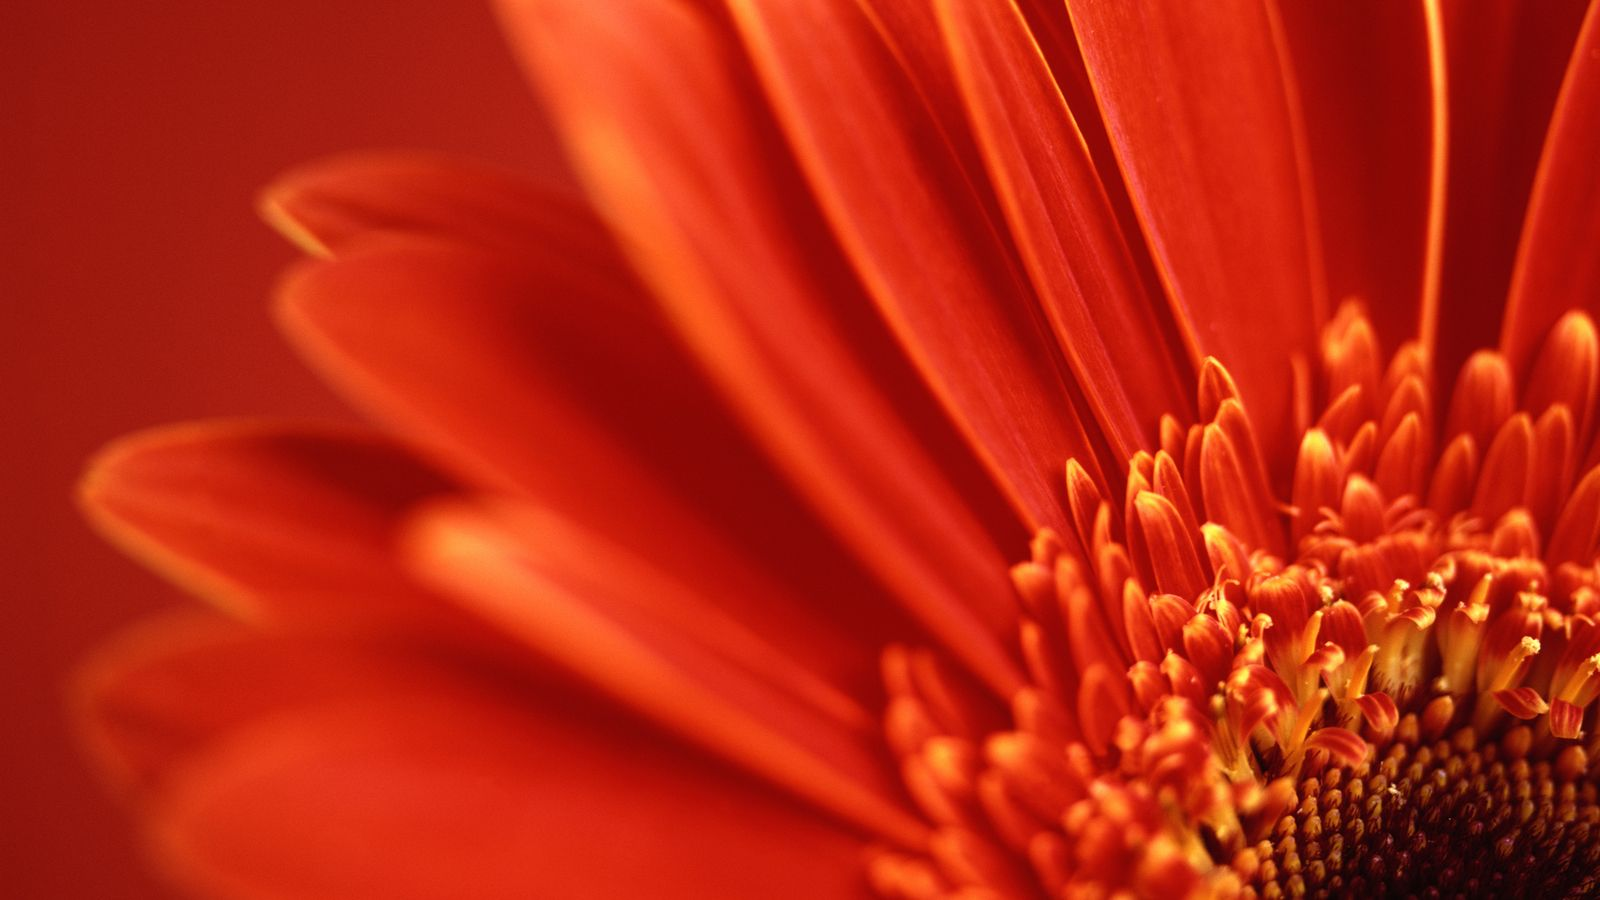 Red Flower Up Close Wallpaper